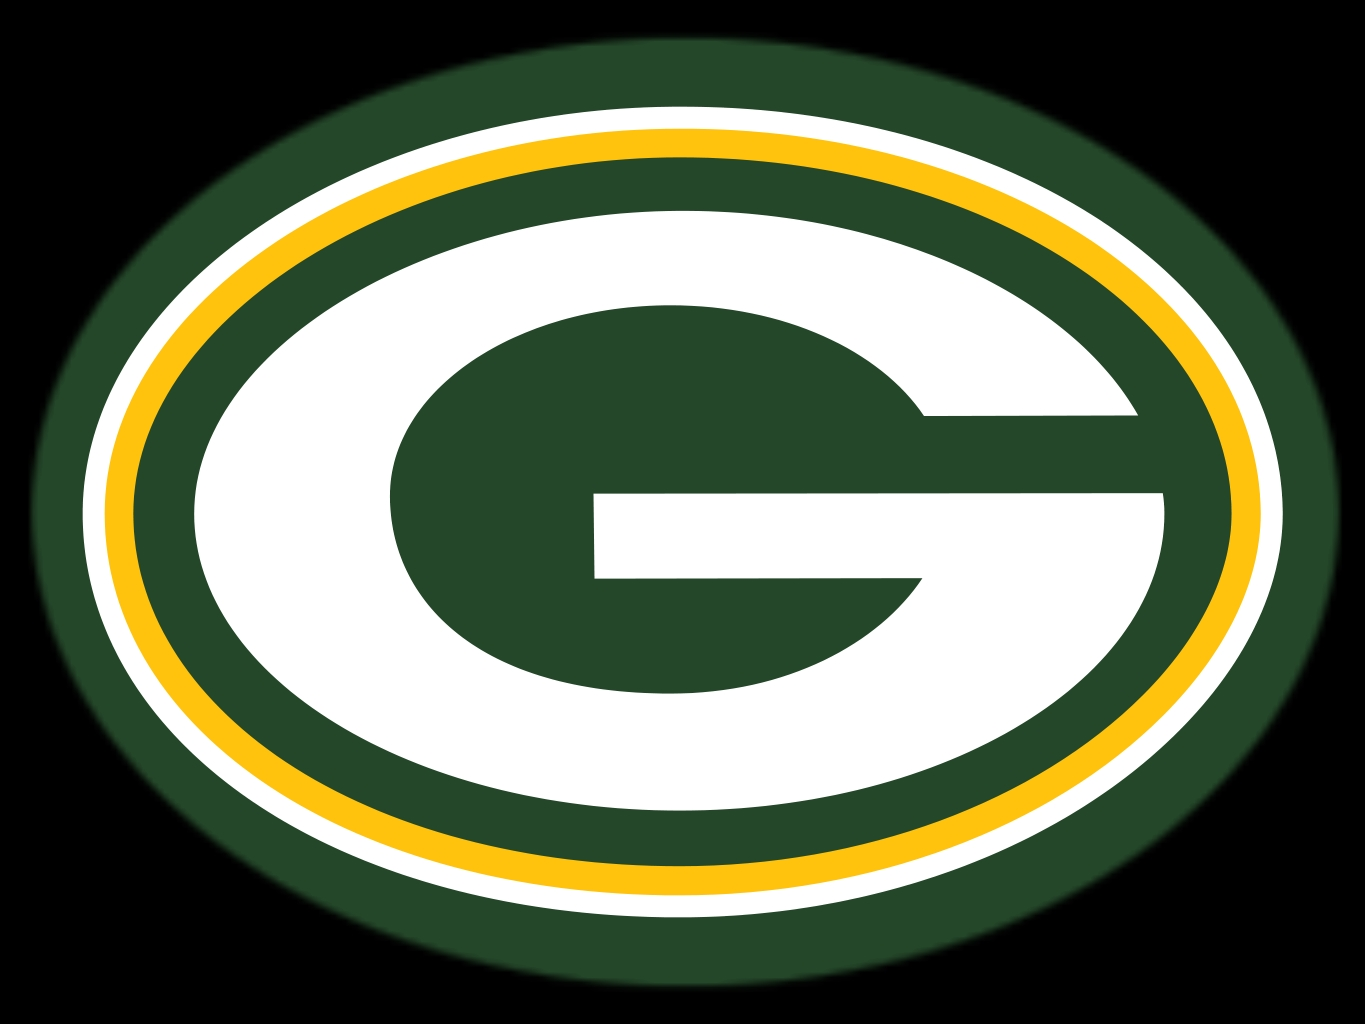 clip art for green bay packers - photo #24